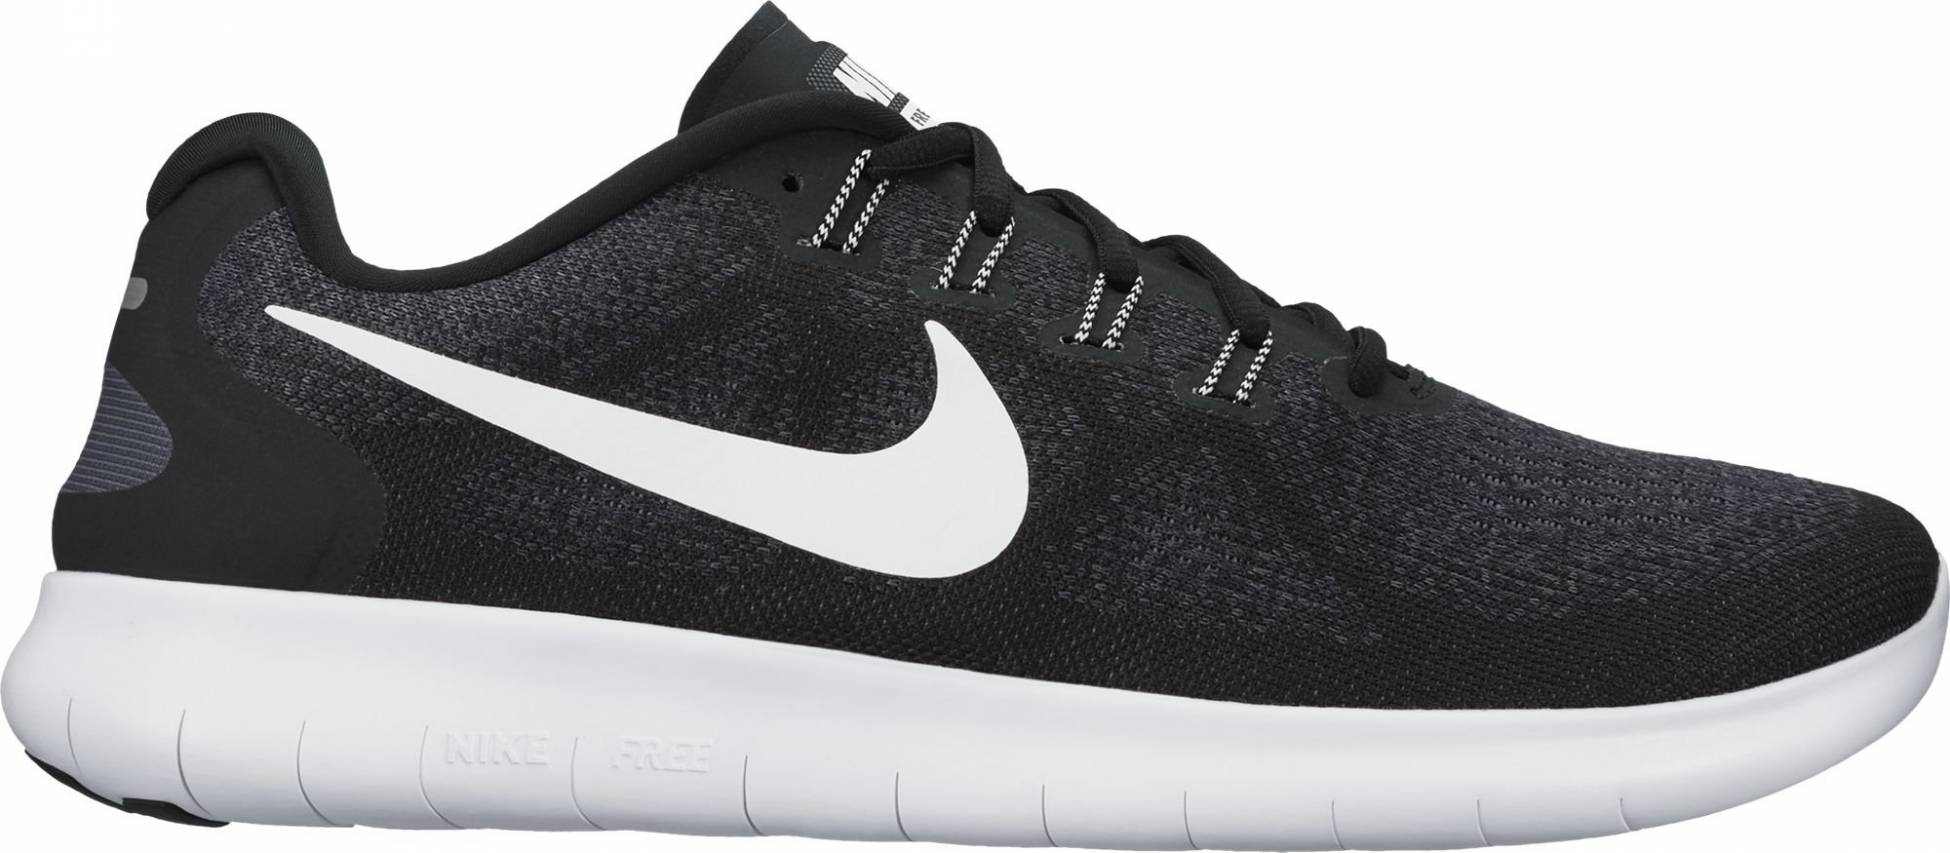 Nike Free Rn 2017 Deals 85 Facts Reviews 2021 Runrepeat